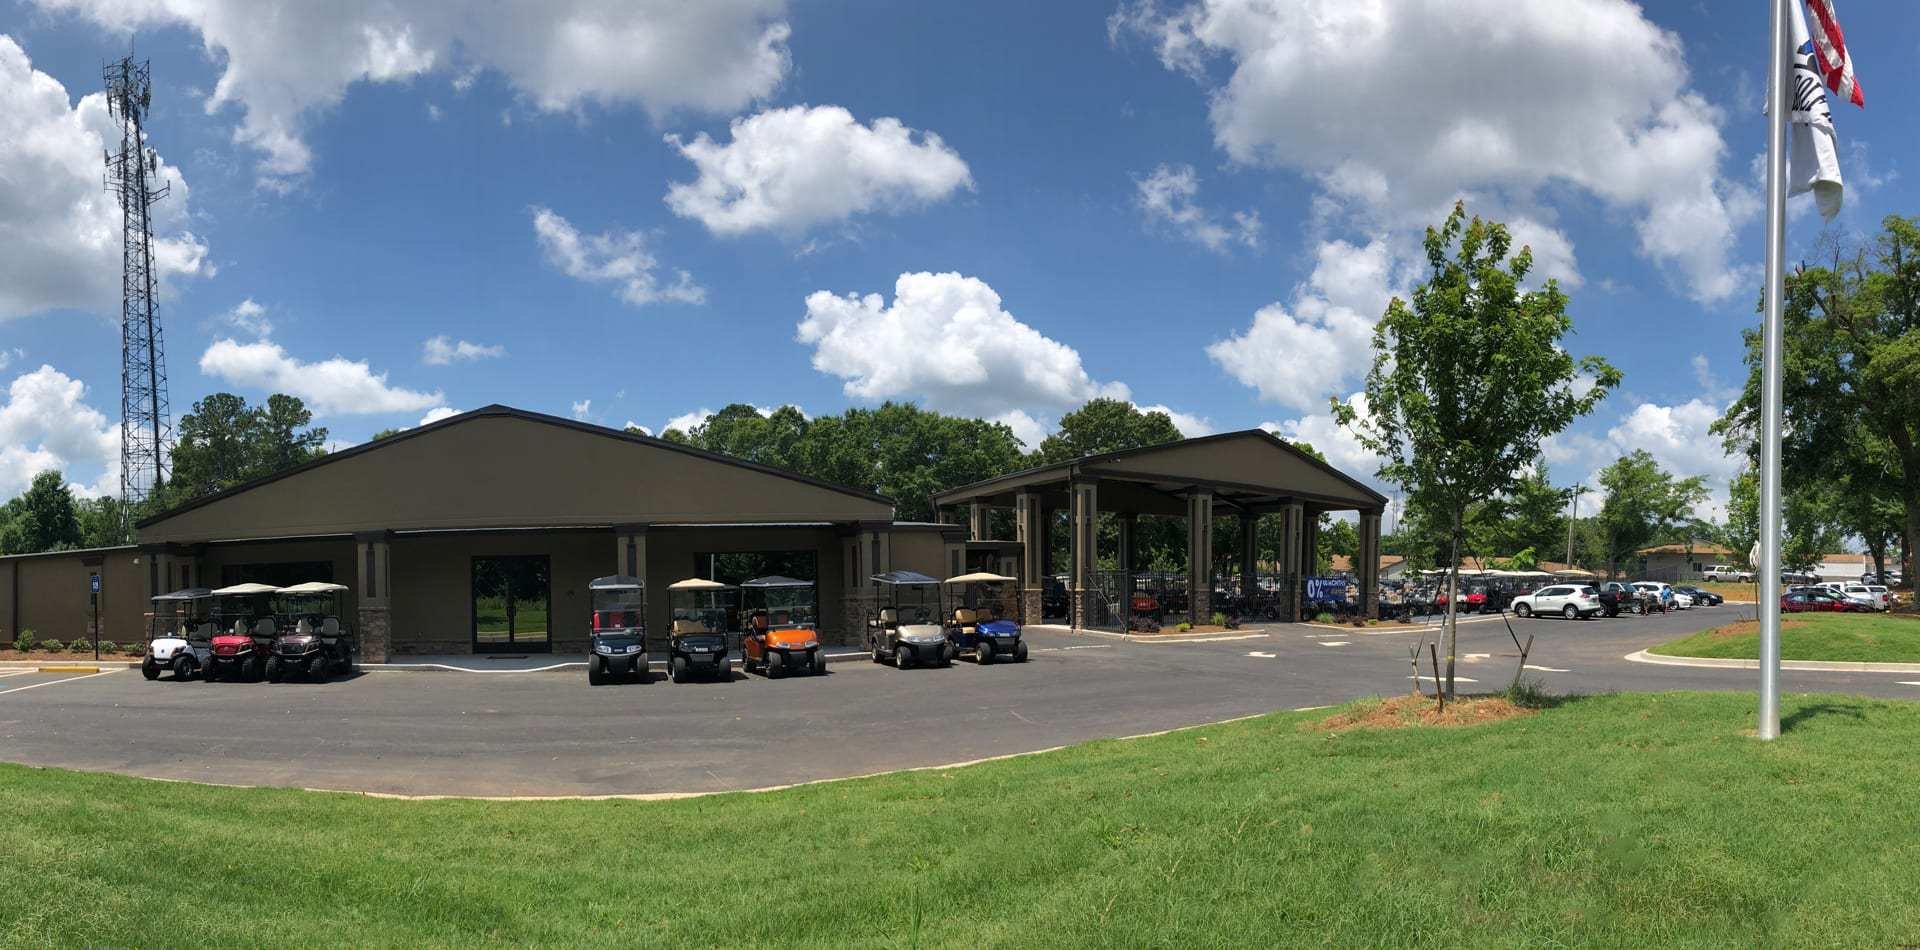 used golf cart parking lot